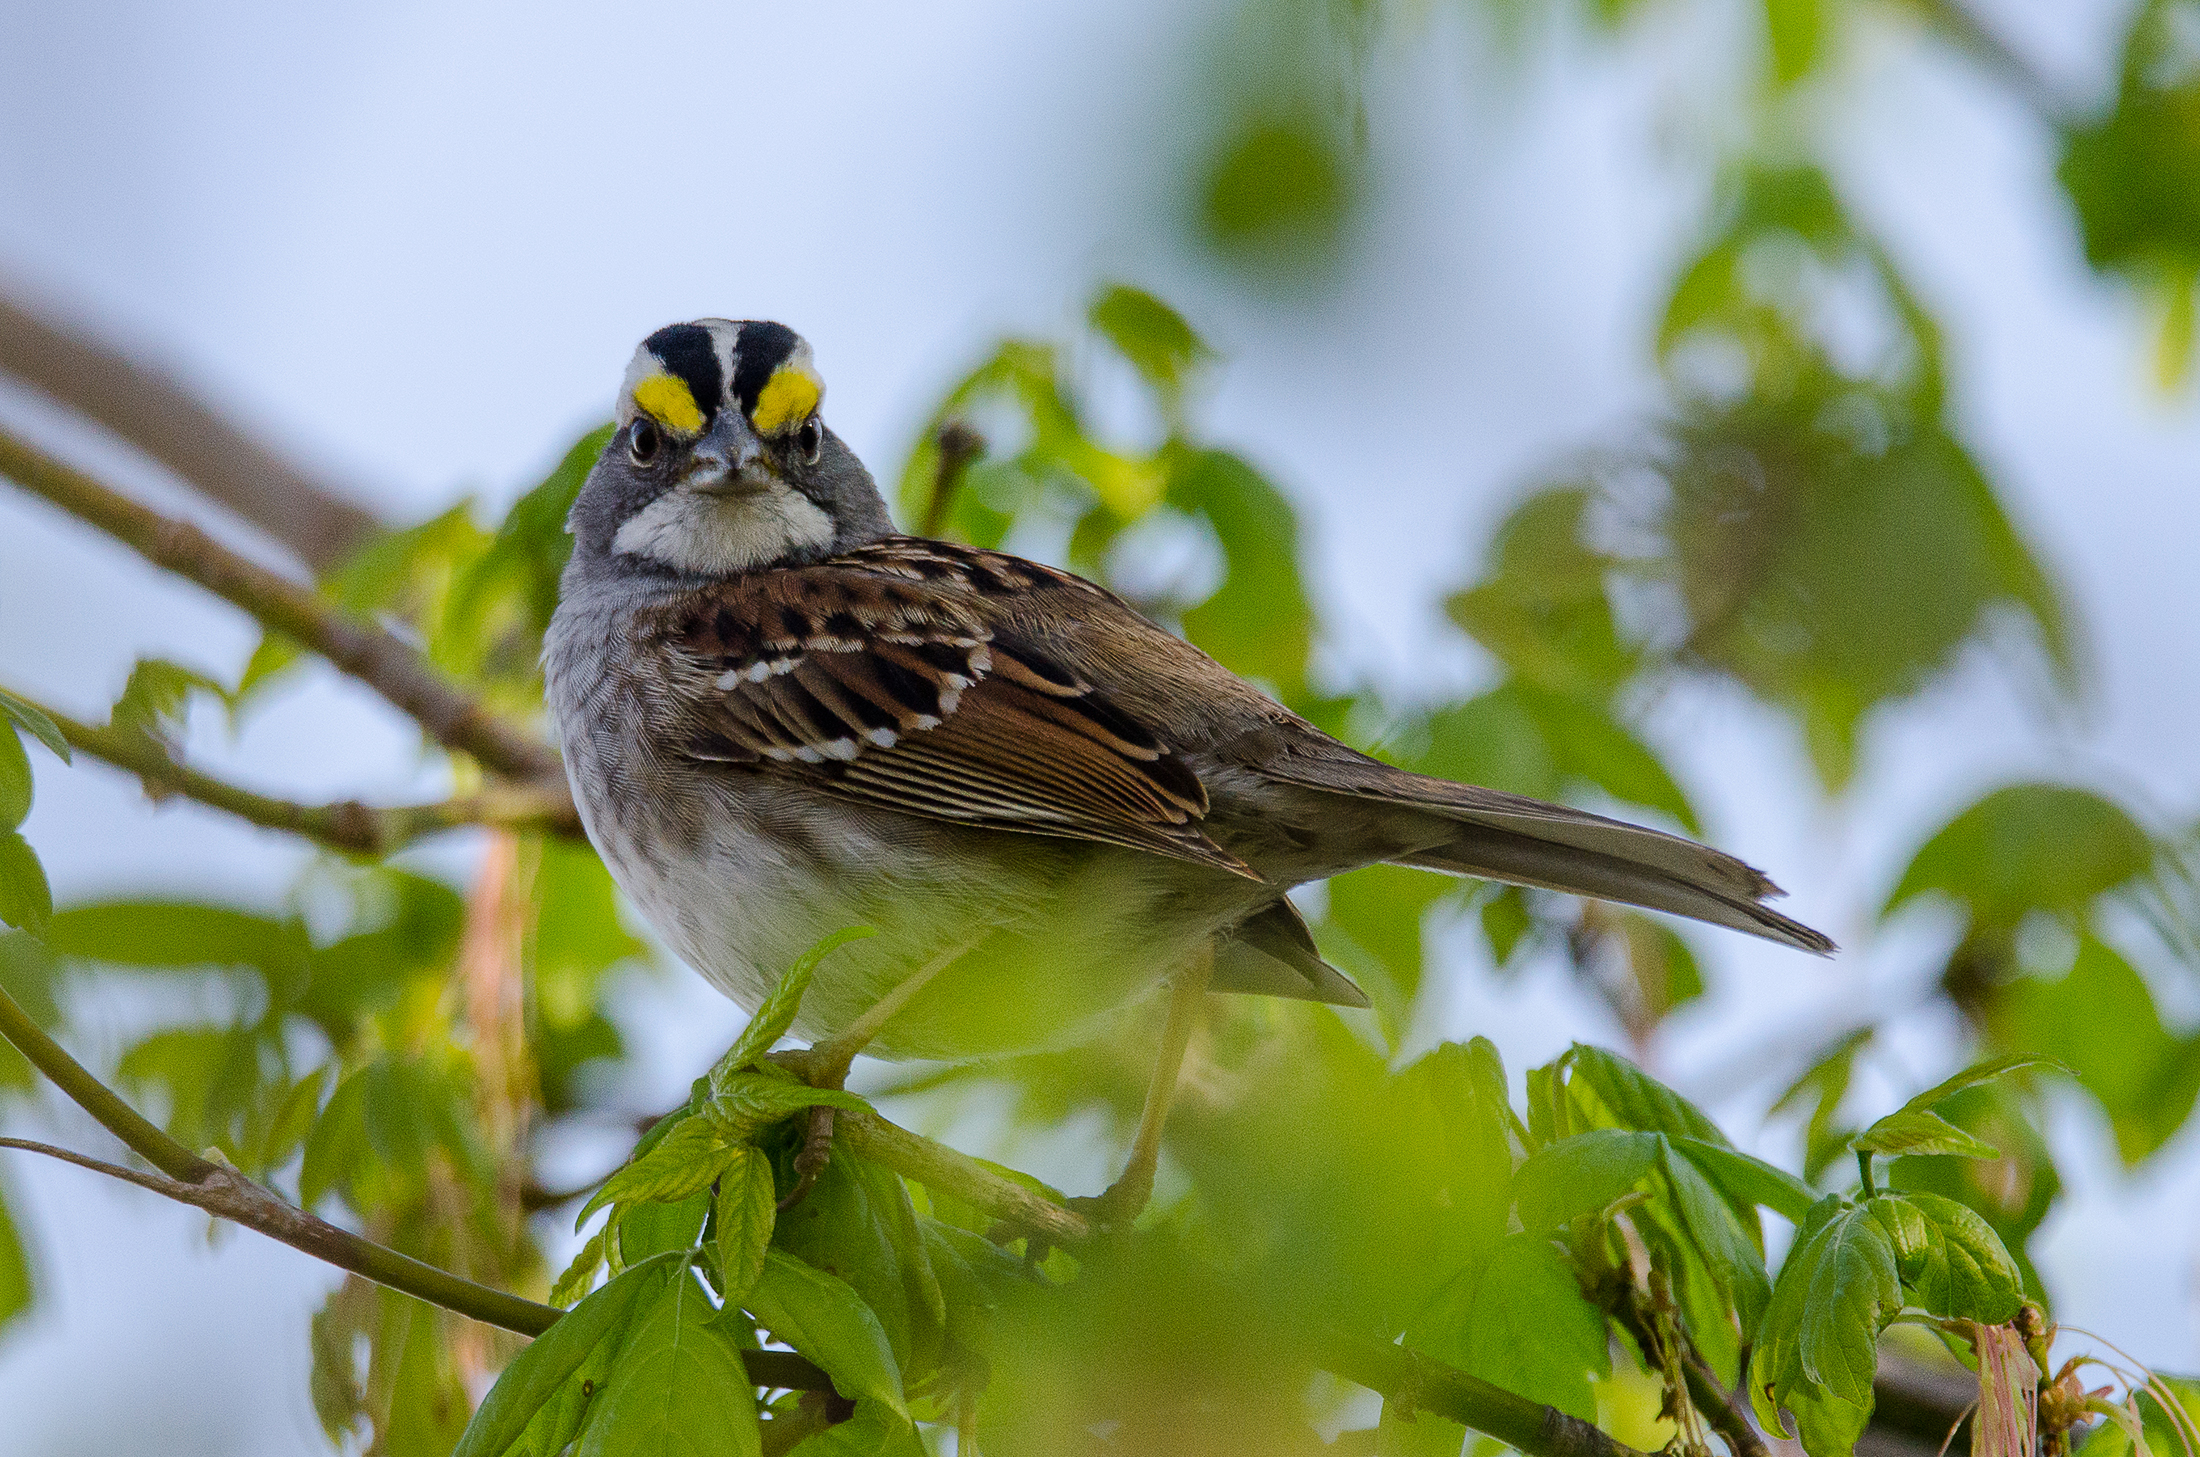 White-Throated Sparrow  Nikon D7000 ISO 800 550mm f/8.0 1/1250 sec